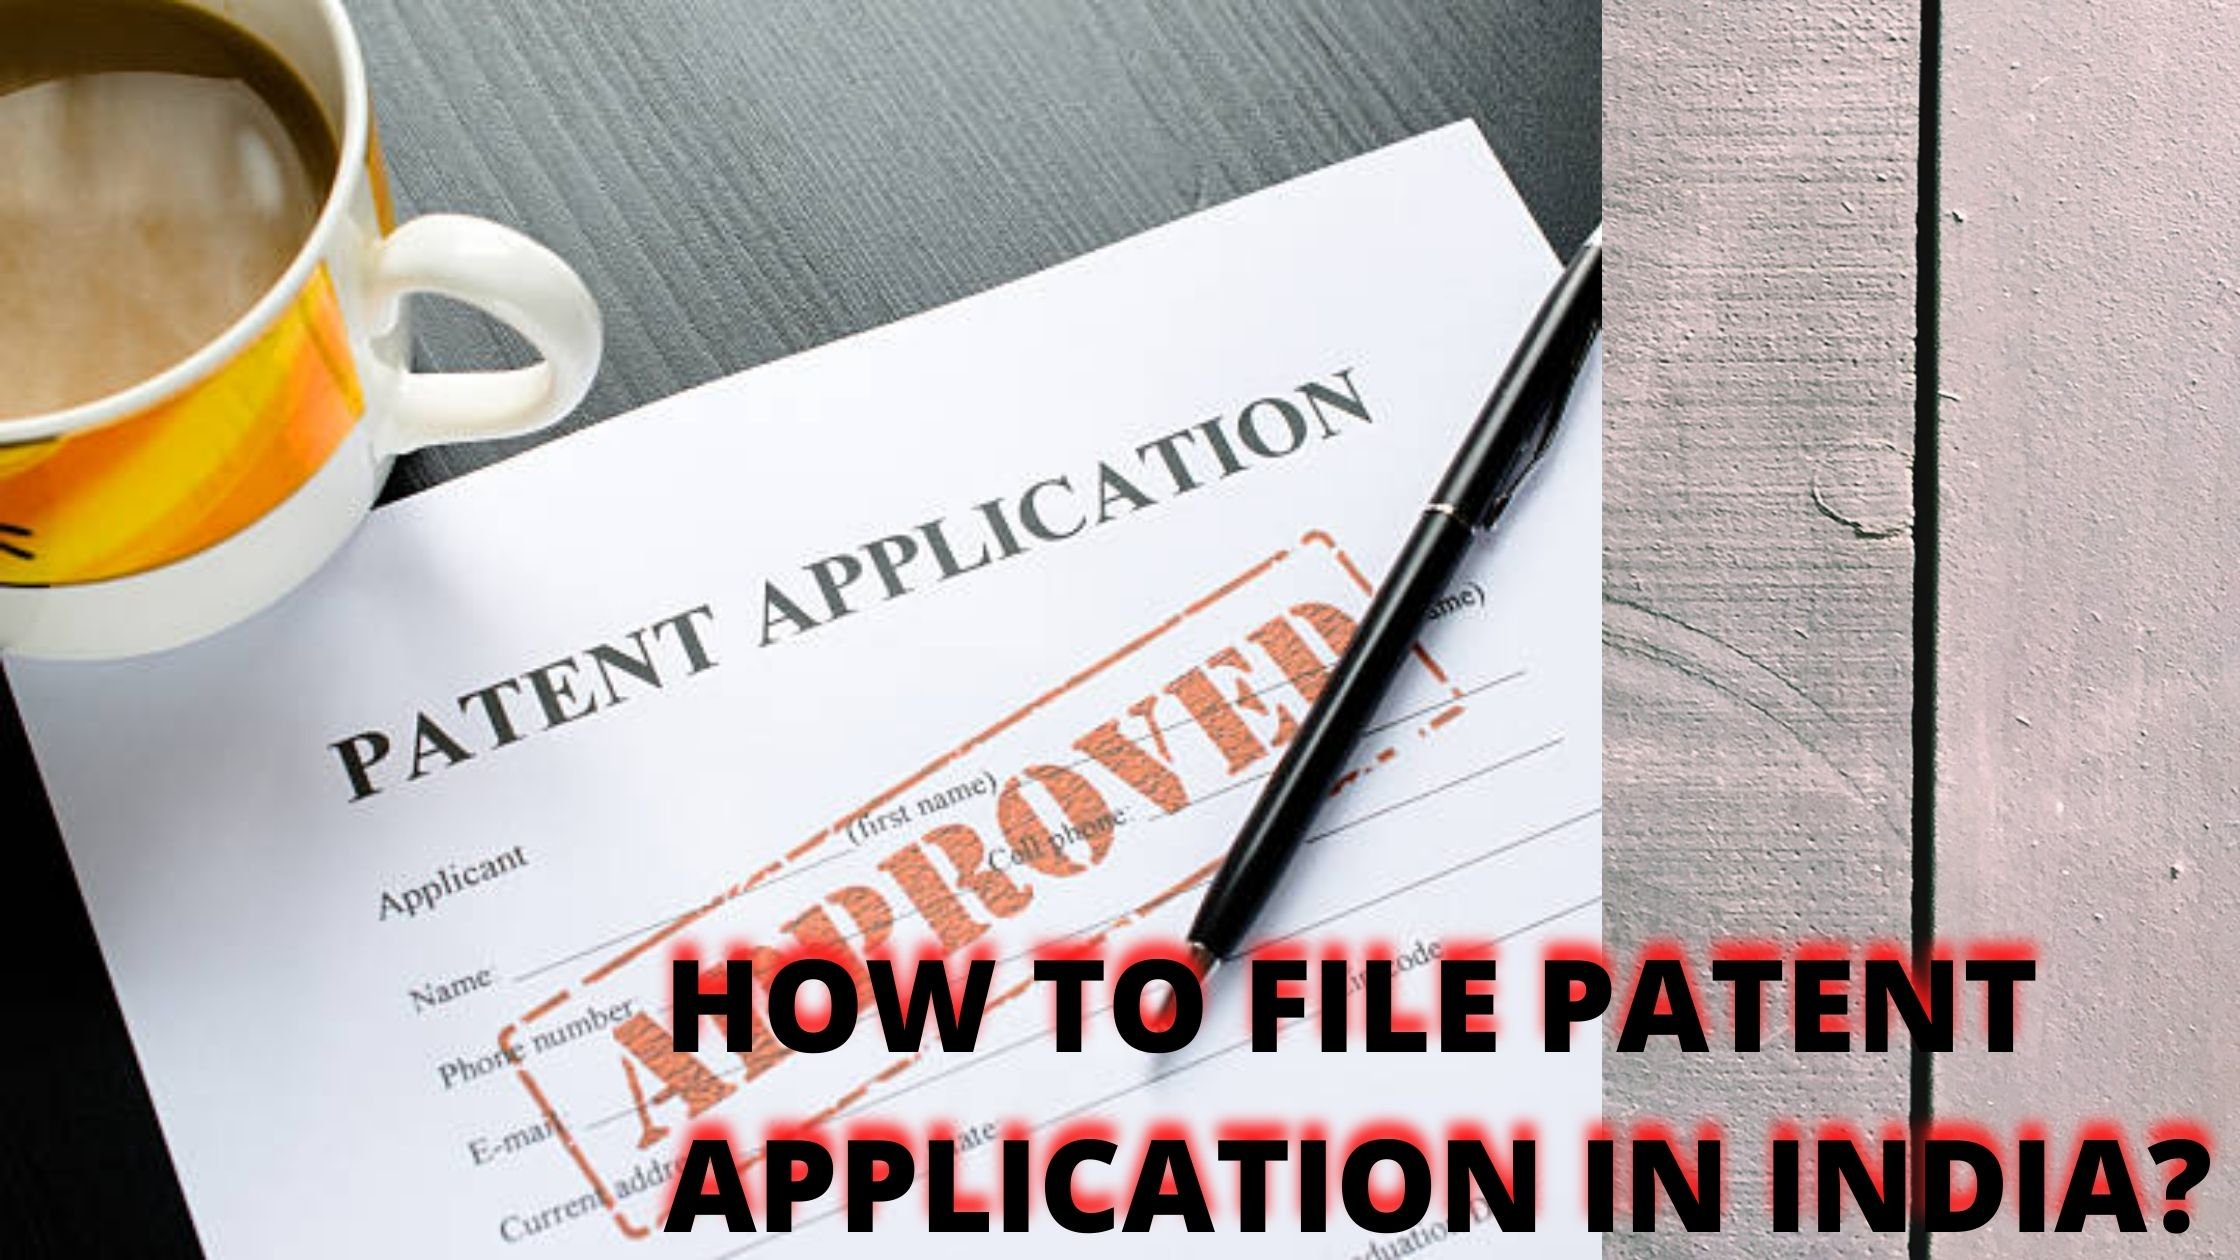 HOW TO FILE A PATENT APPLICATION IN INDIA?